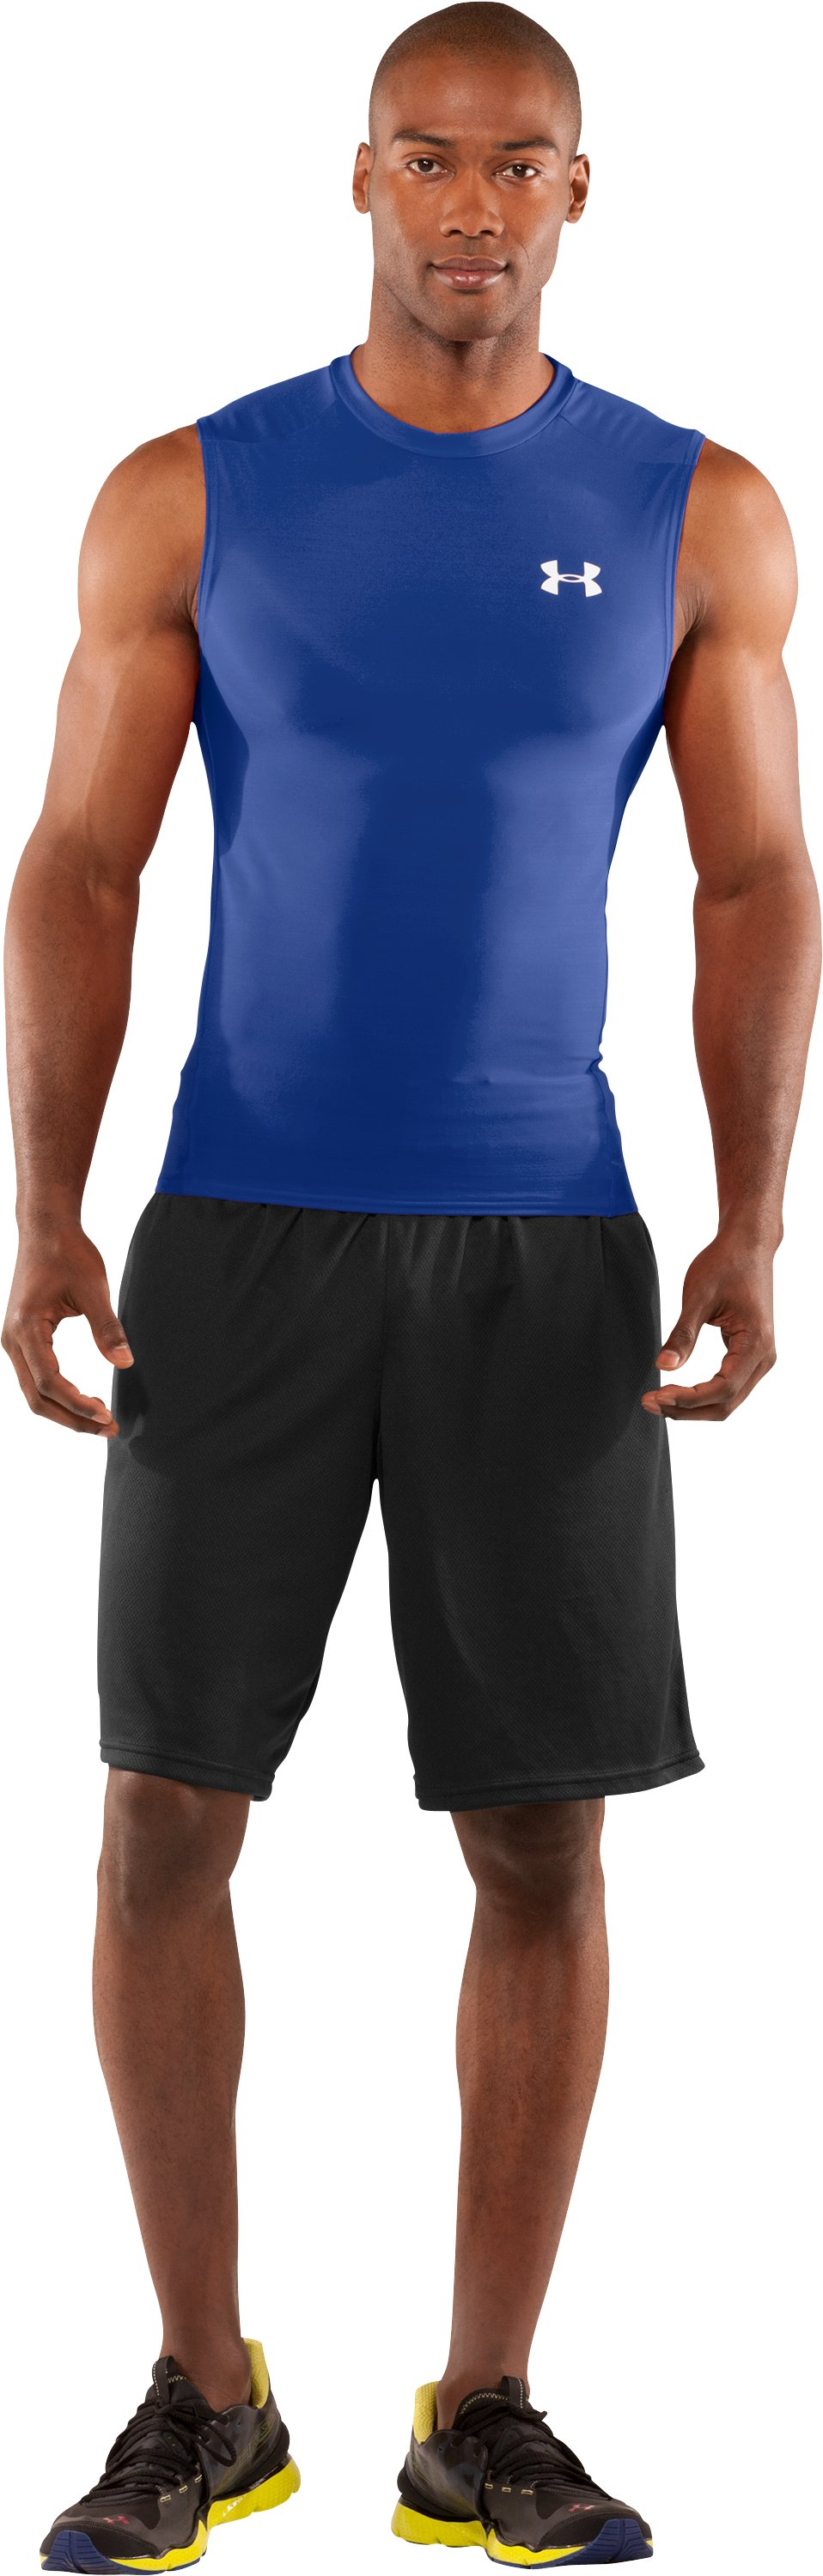 Men's HeatGear® Compression Sleeveless T-Shirt, Royal, Front